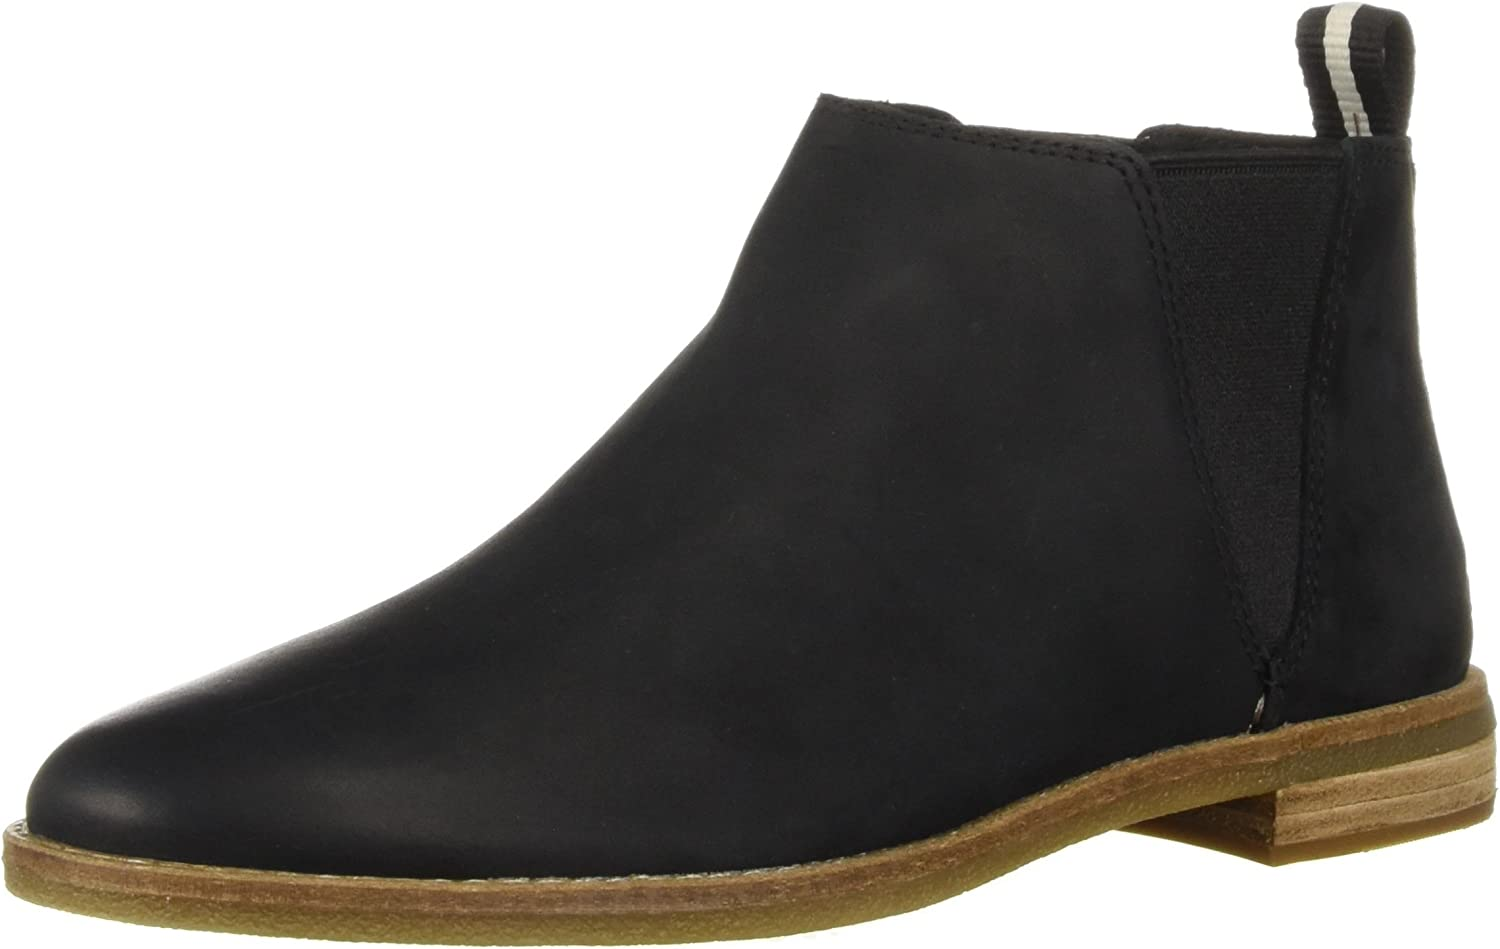 Sperry Top-Sider - - - Damen Seaport Daley Stiefel 9ce